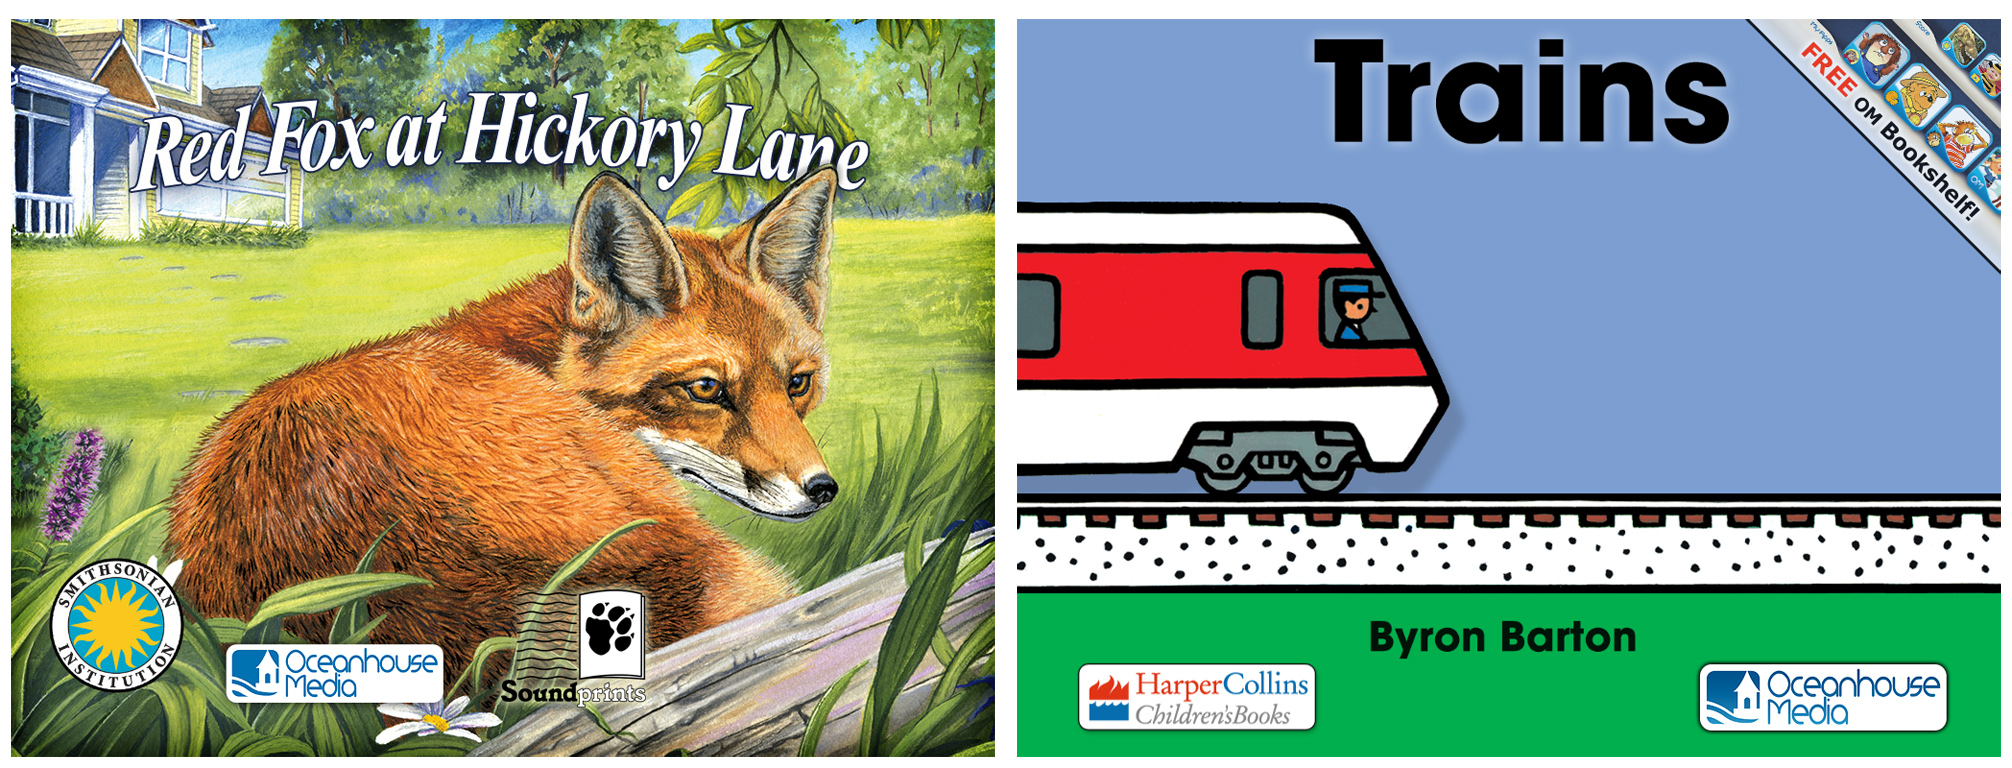 Red Fox At Hickory Lane And Trains Make Their Way To The App Store